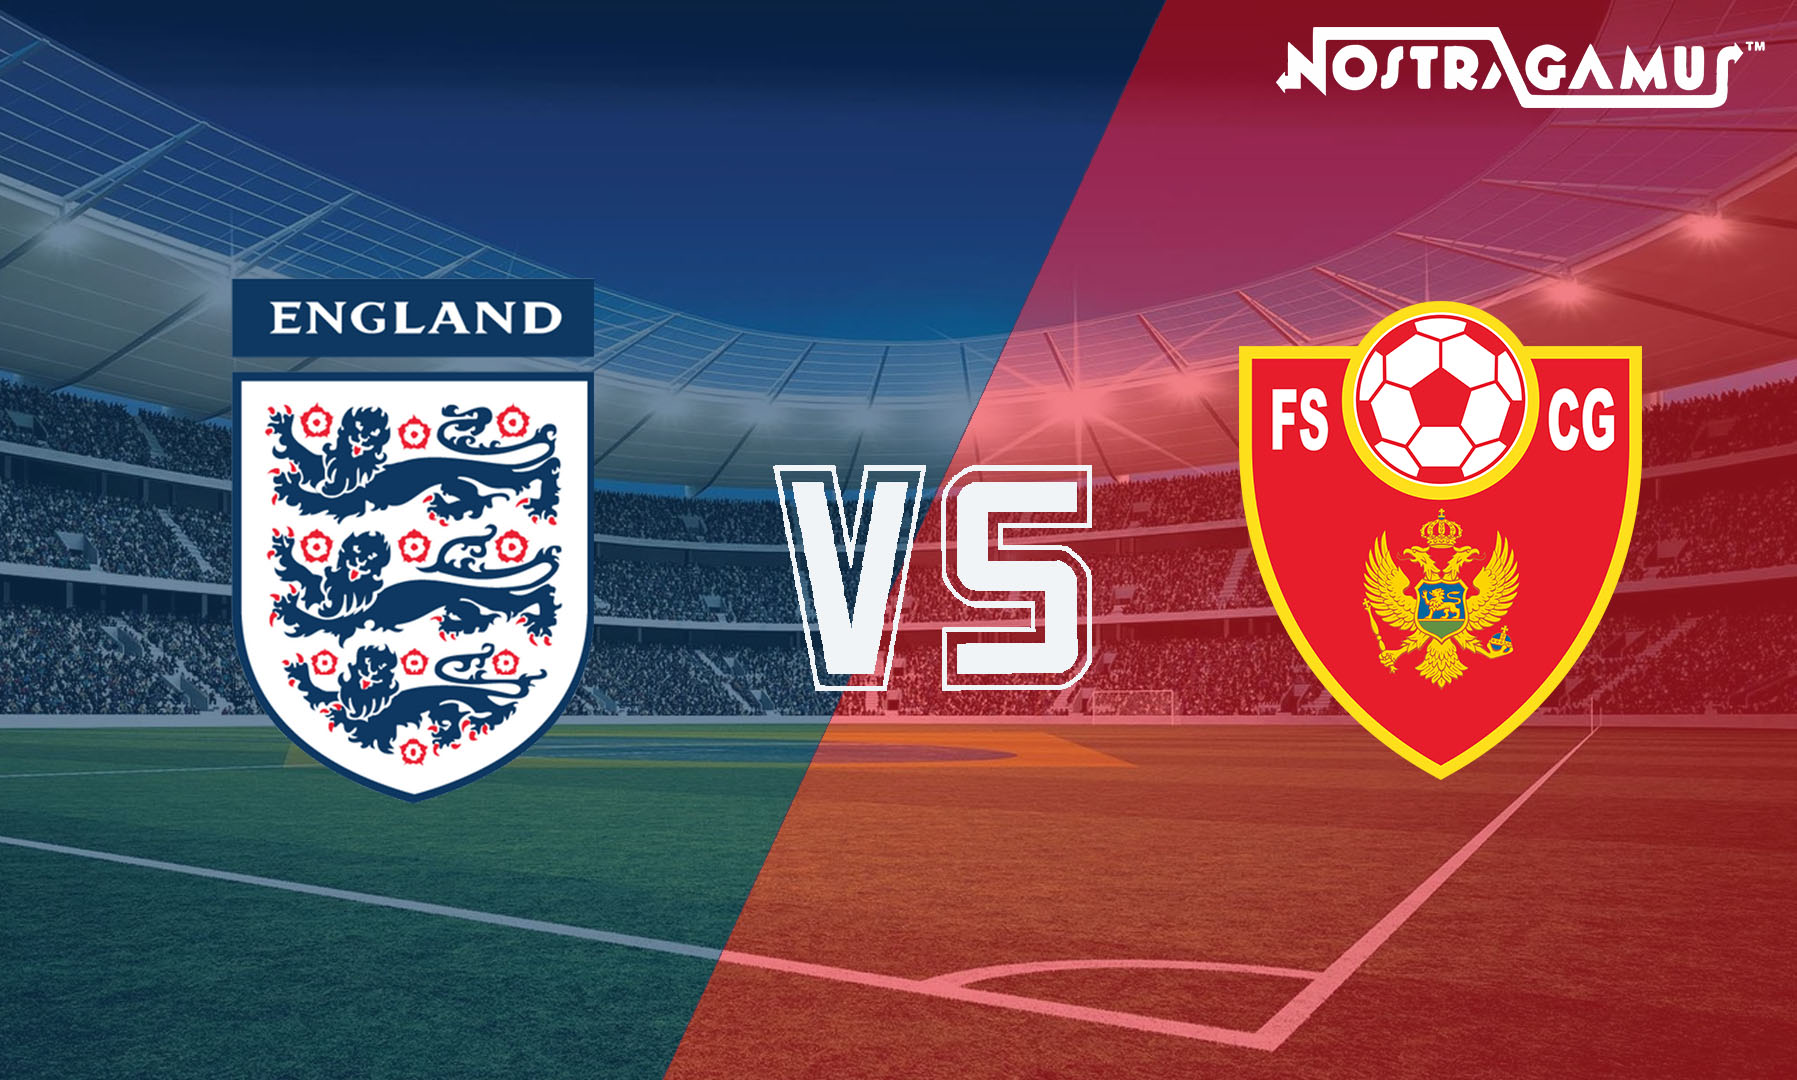 Euro 2020 Qualifiers Predictions: England vs Montenegro